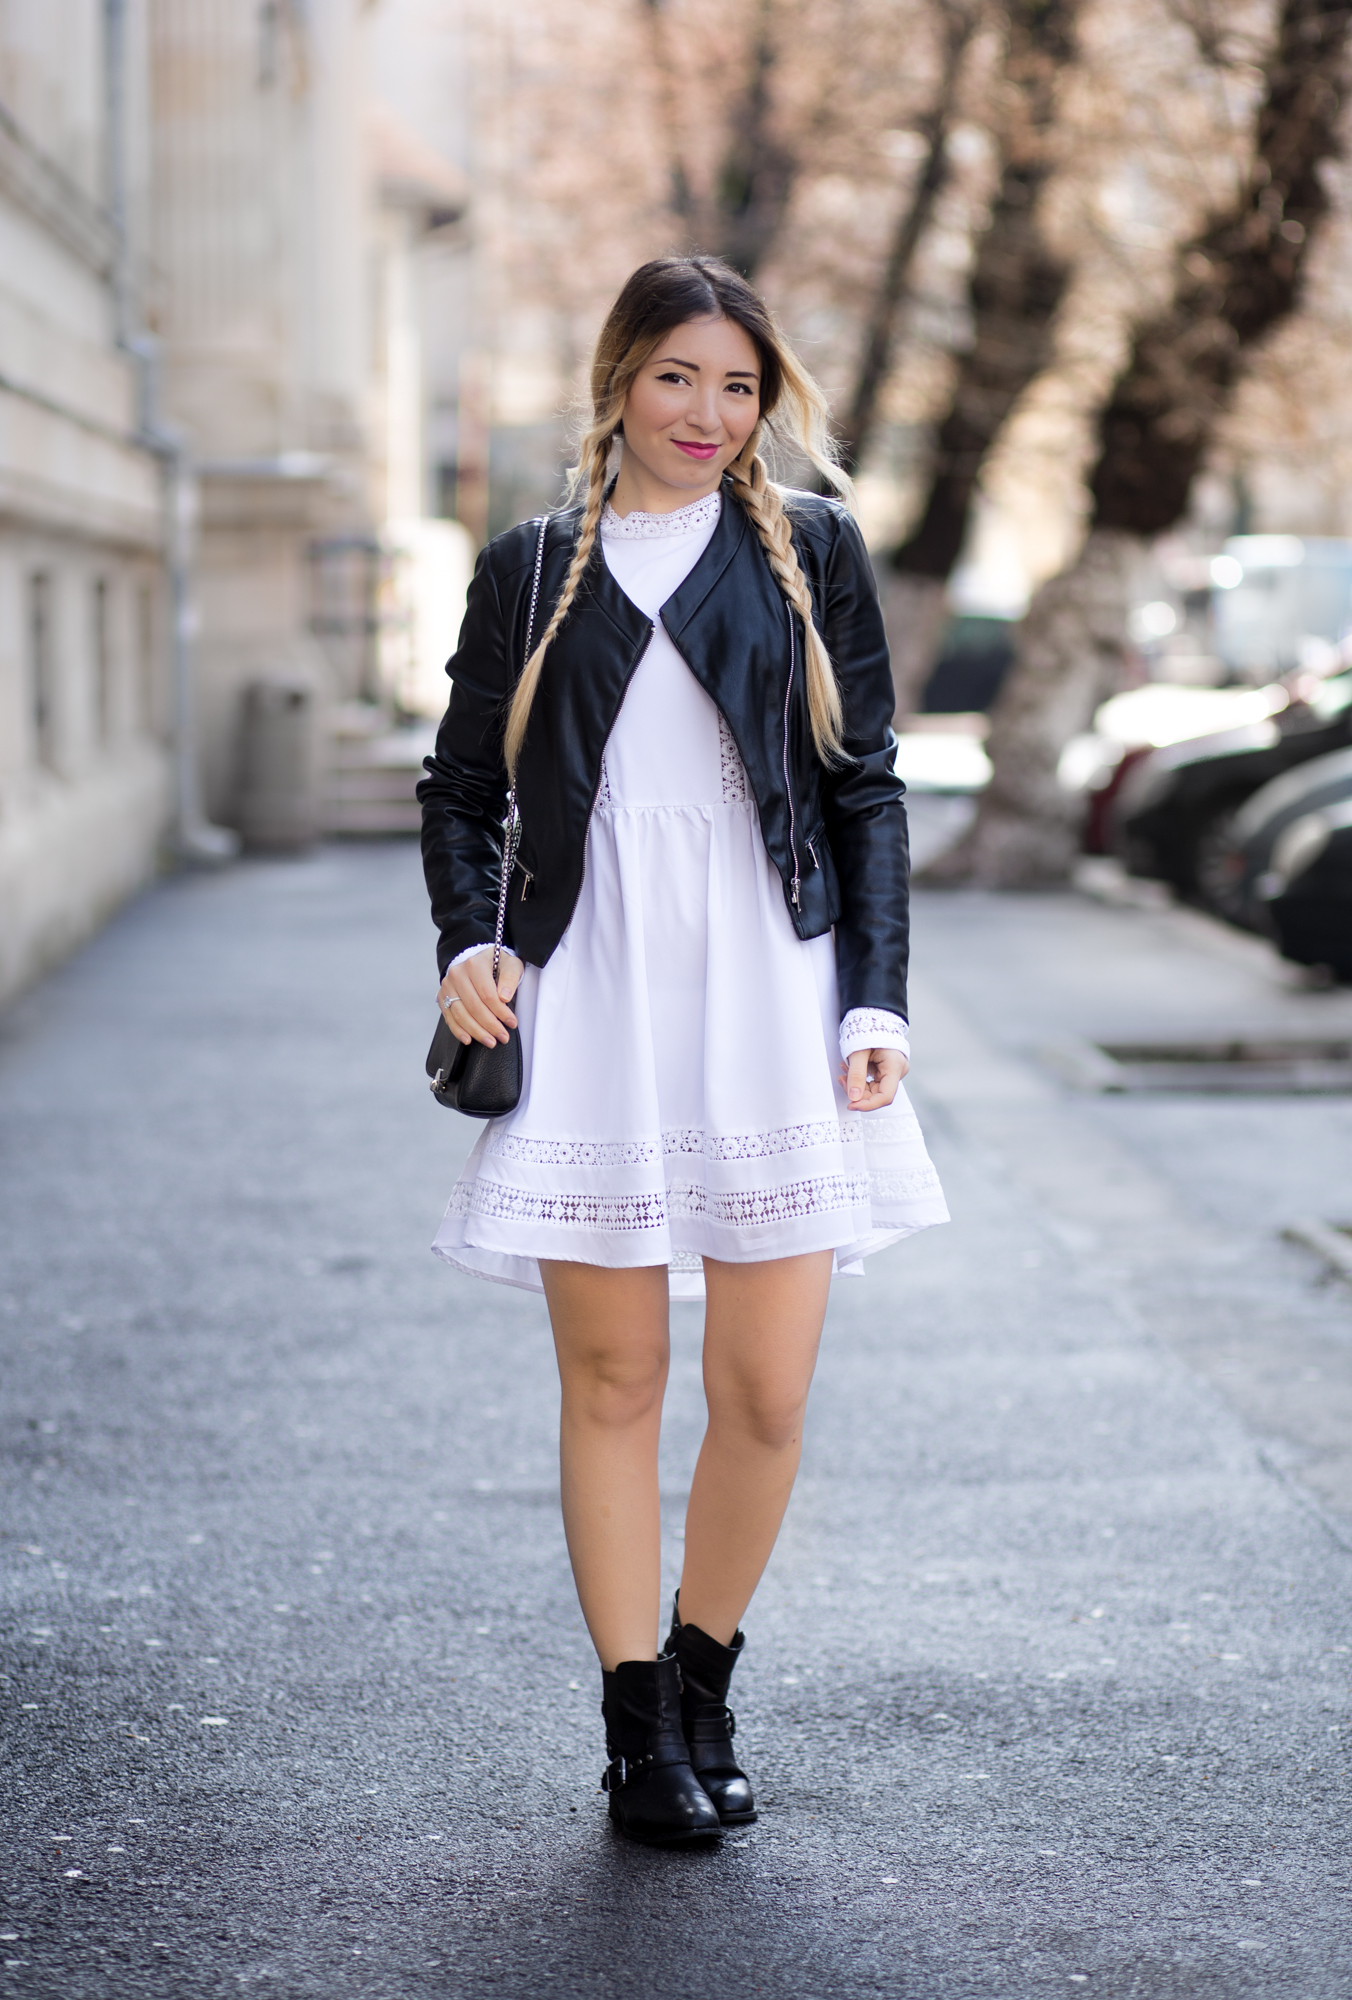 White Long Sleeve With Lace Dress Romwe - street style - fashion blogger Andreea Ristea